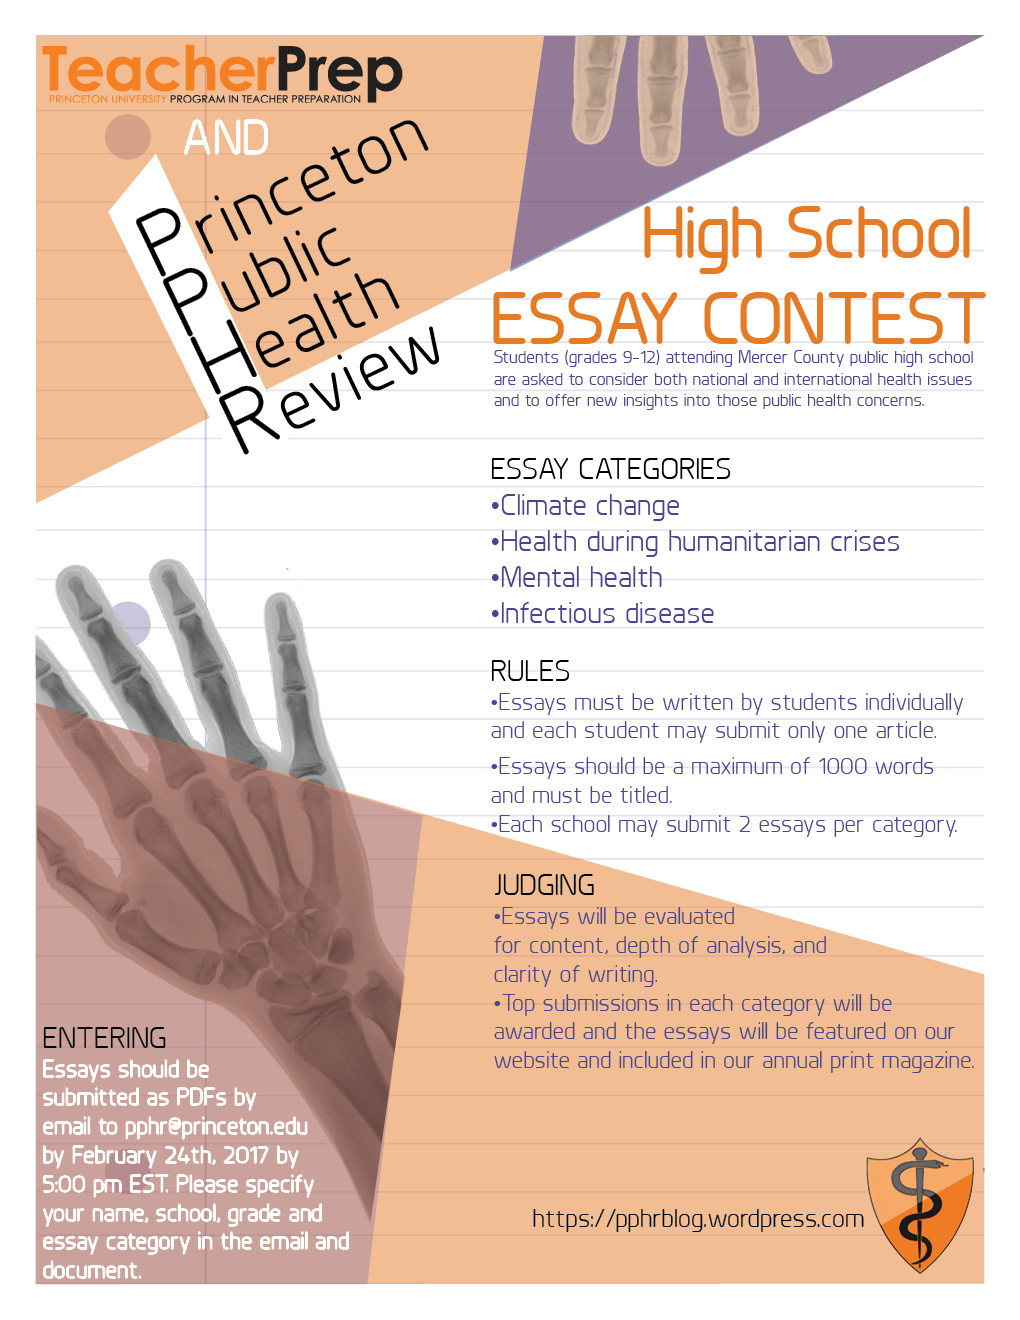 015 Princeton Essay Pphressaycontestfeb24 Astounding Review College Guide Graded Confidential Full